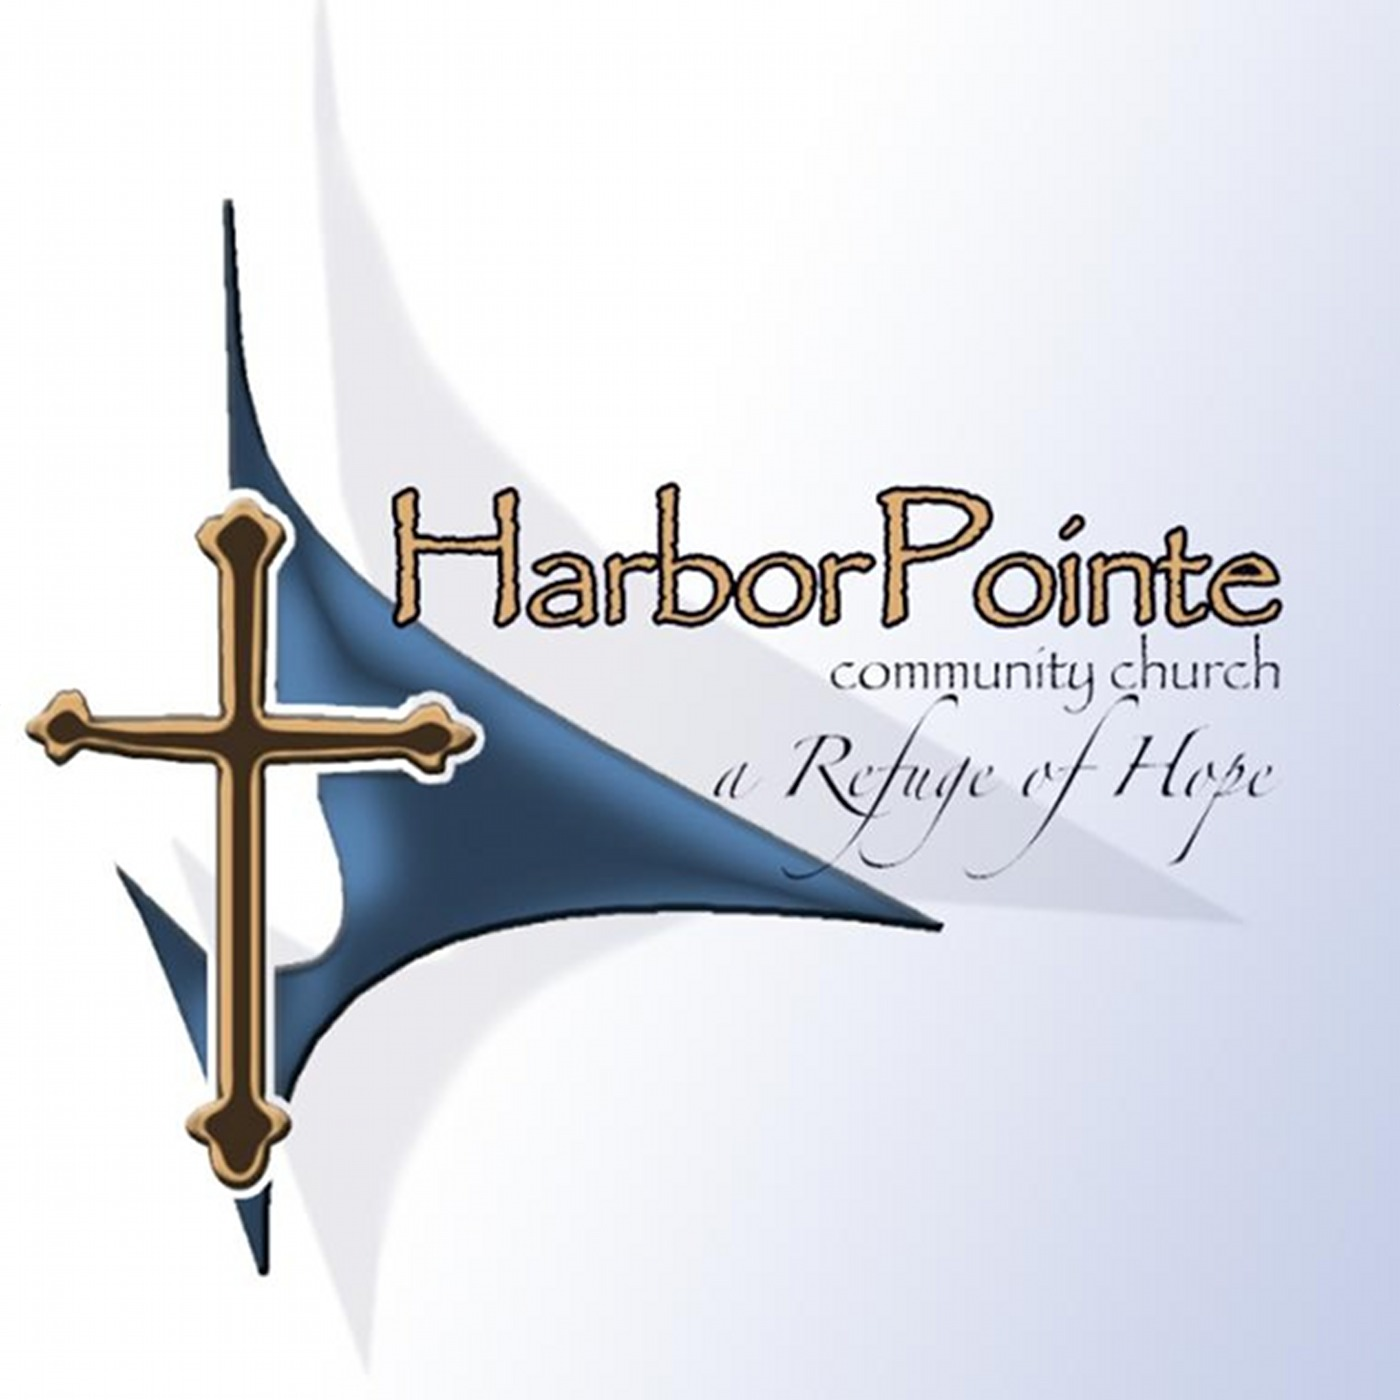 HarborPointe community church » » Sermons - HarborPointe community church